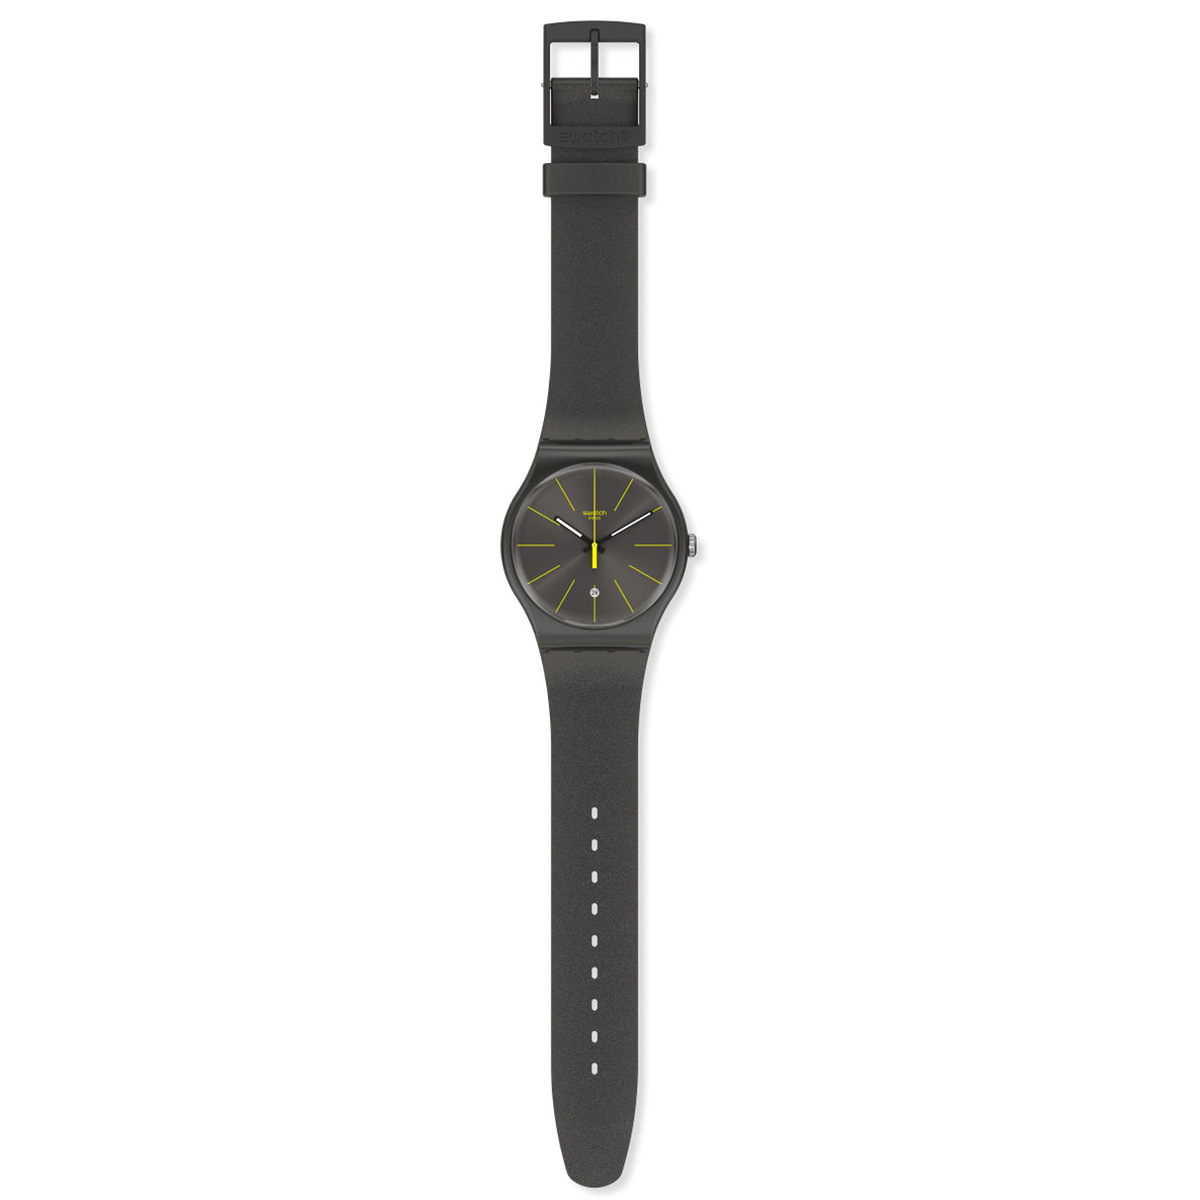 Swatch Watch 41mm - Charcolazing